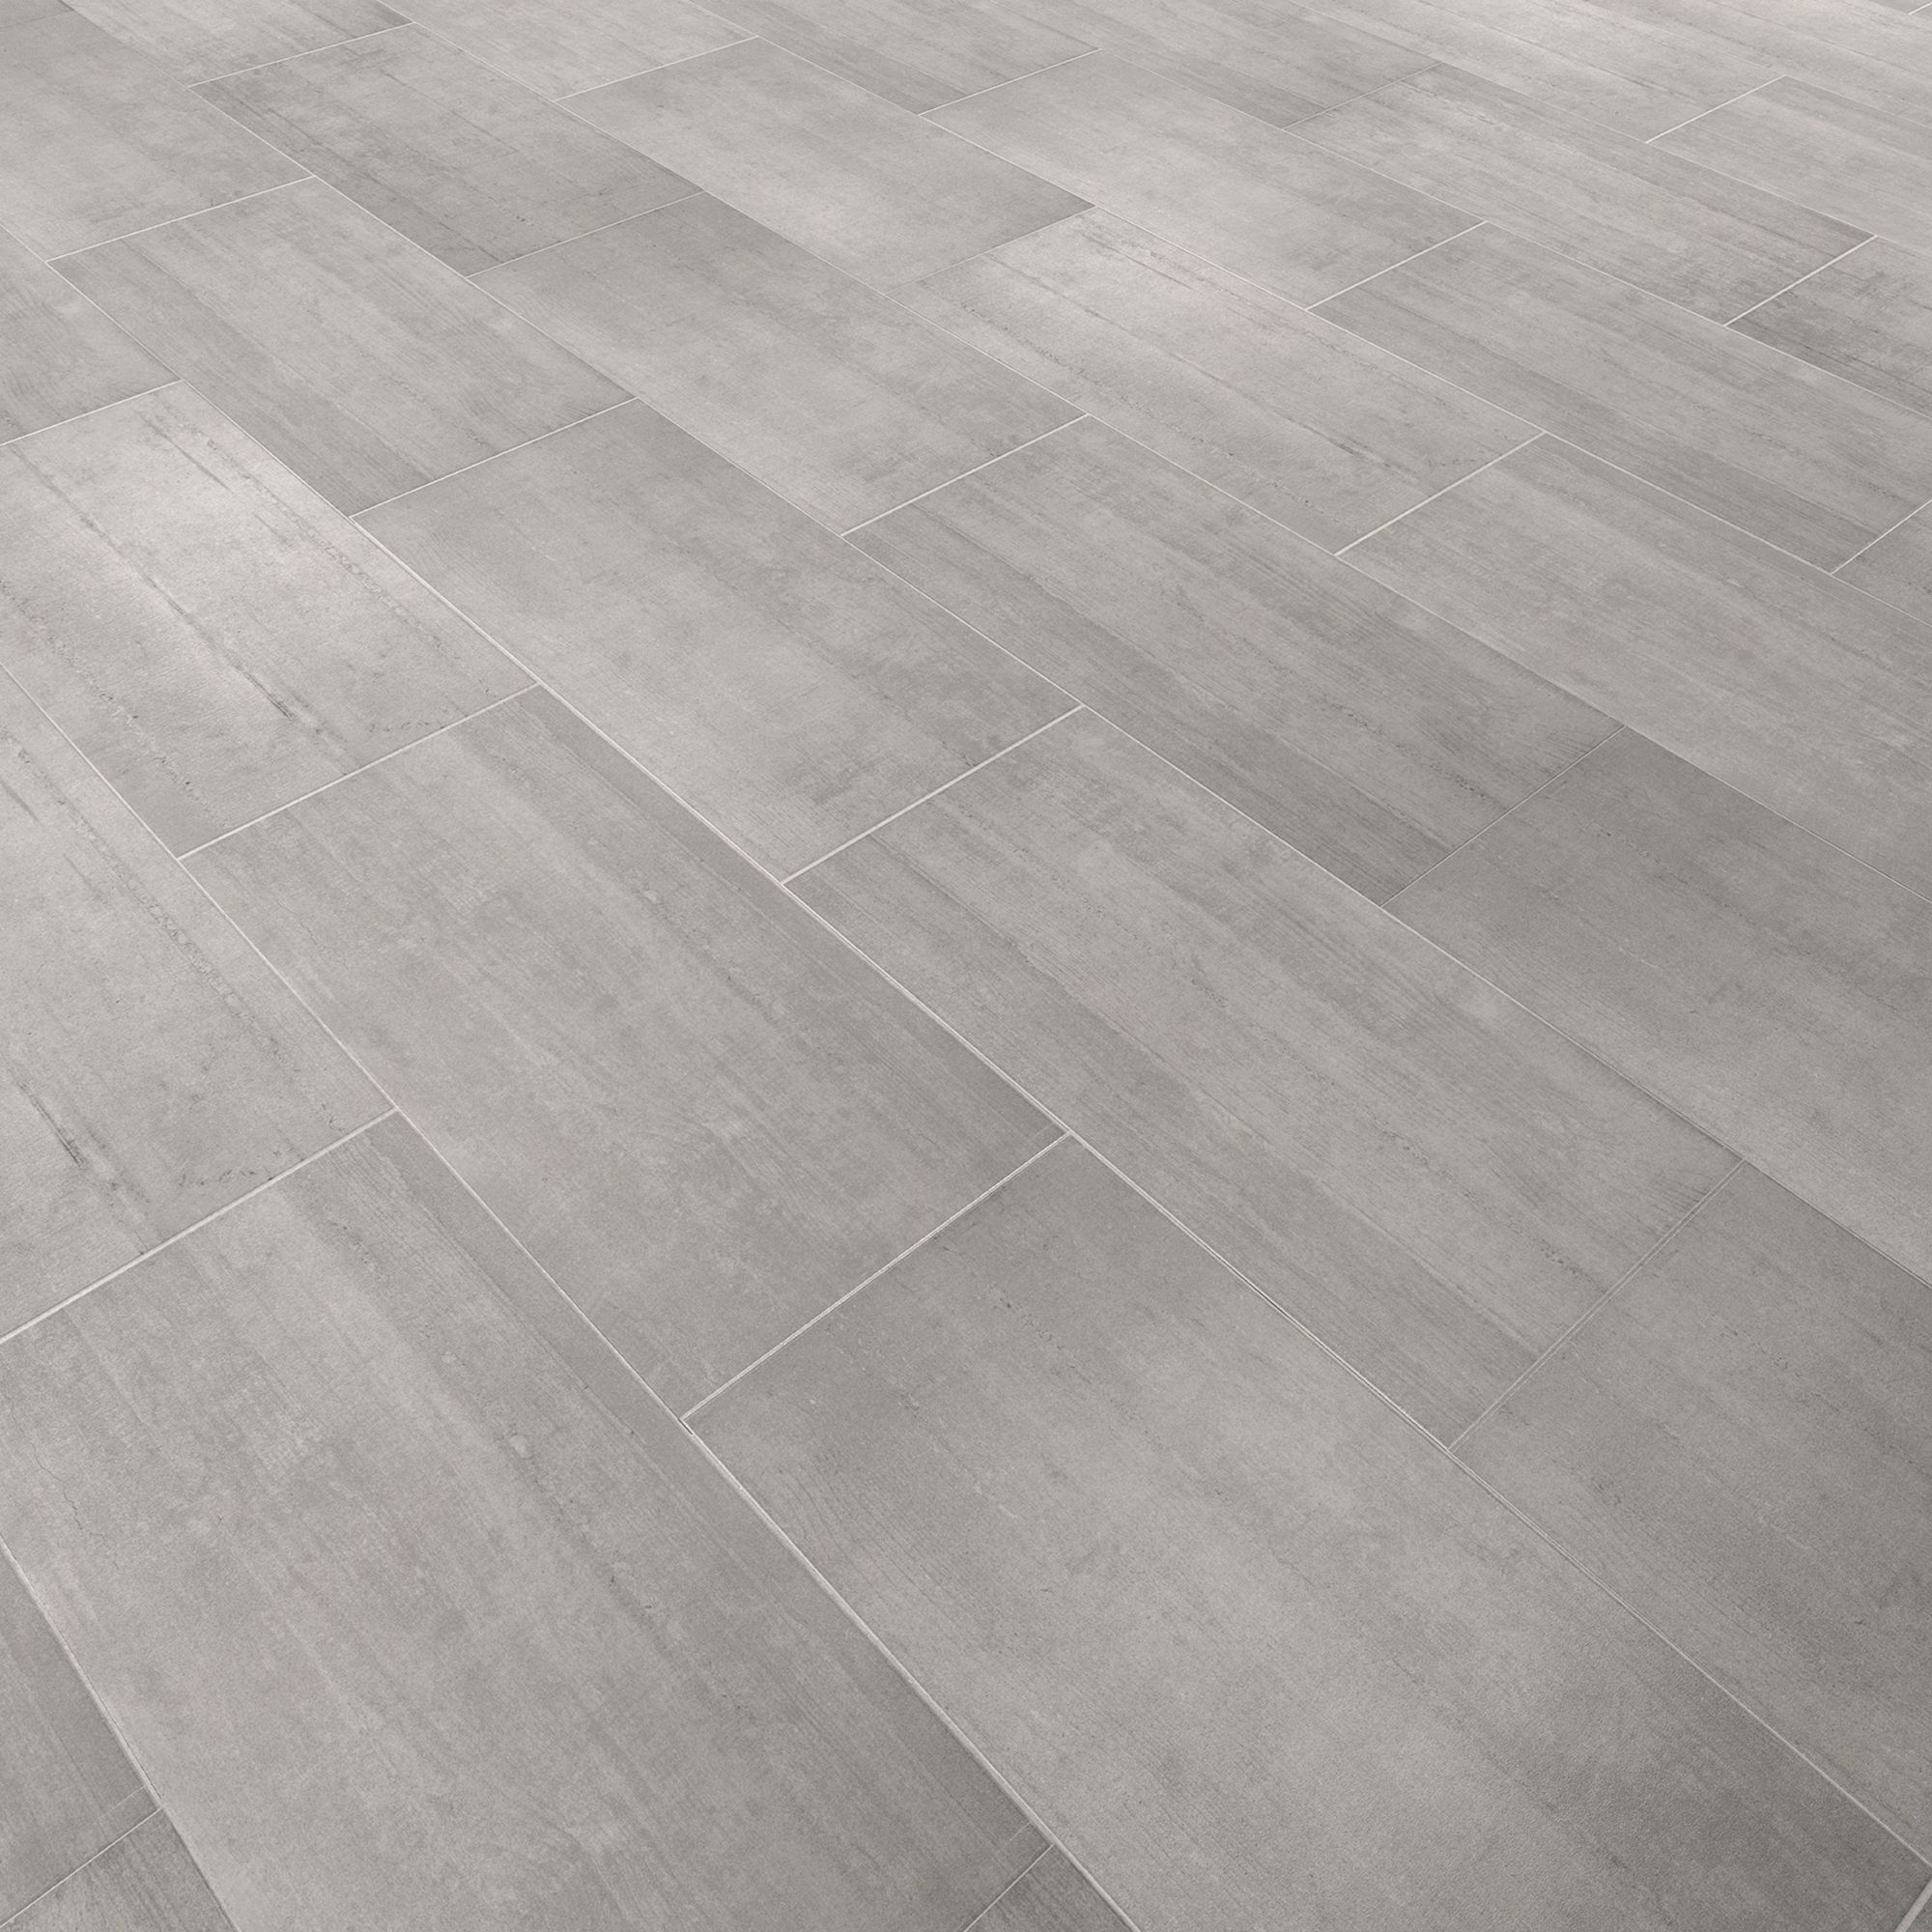 Grey Cement Floor : Leggiero grey concrete effect laminate flooring m²